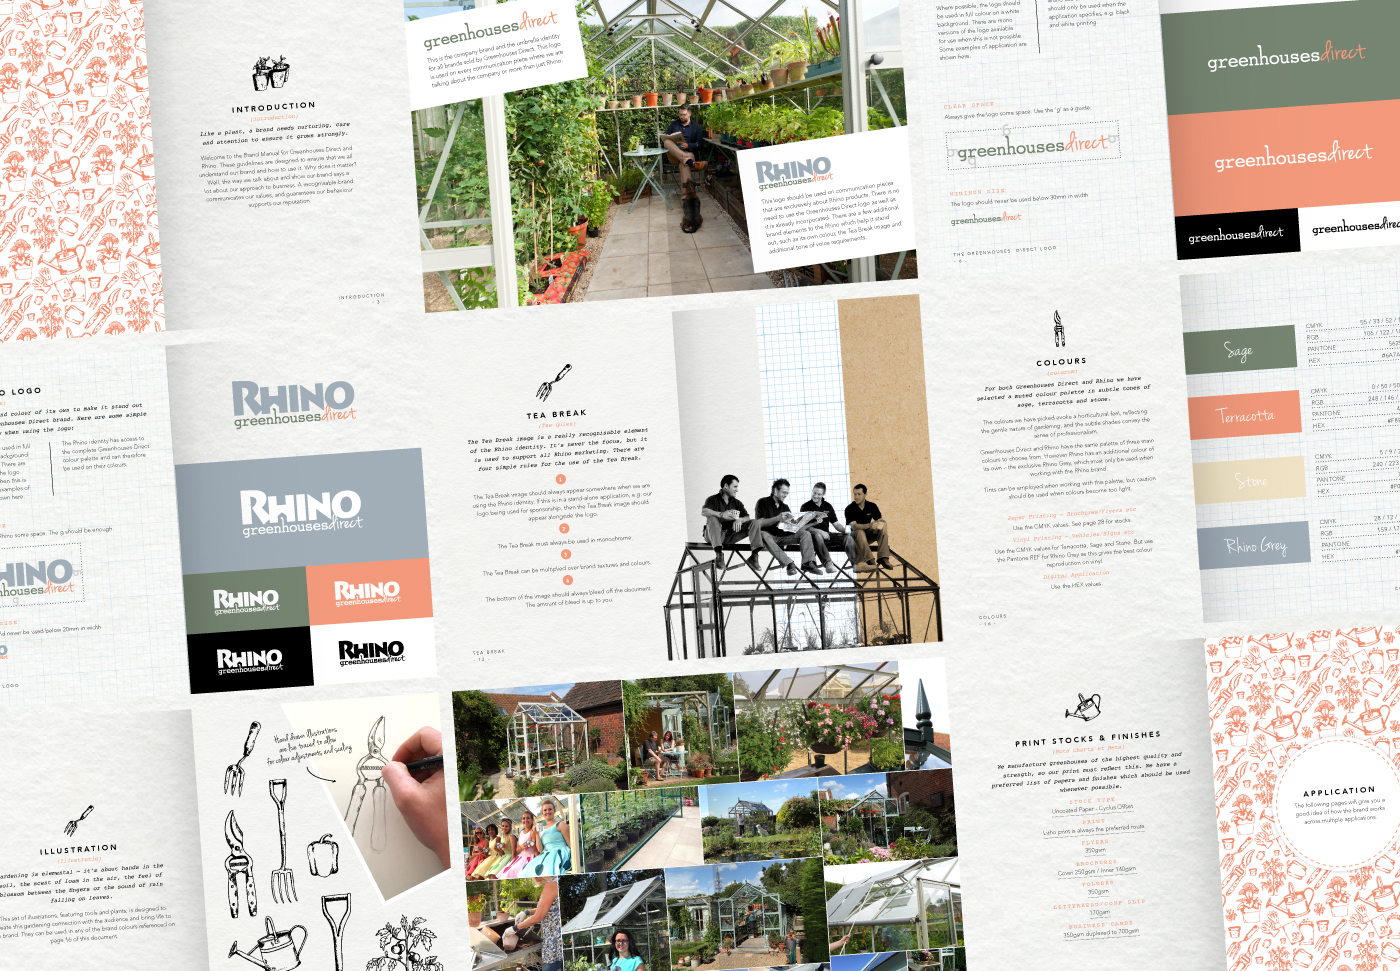 Greenhouses Direct brand guidelines